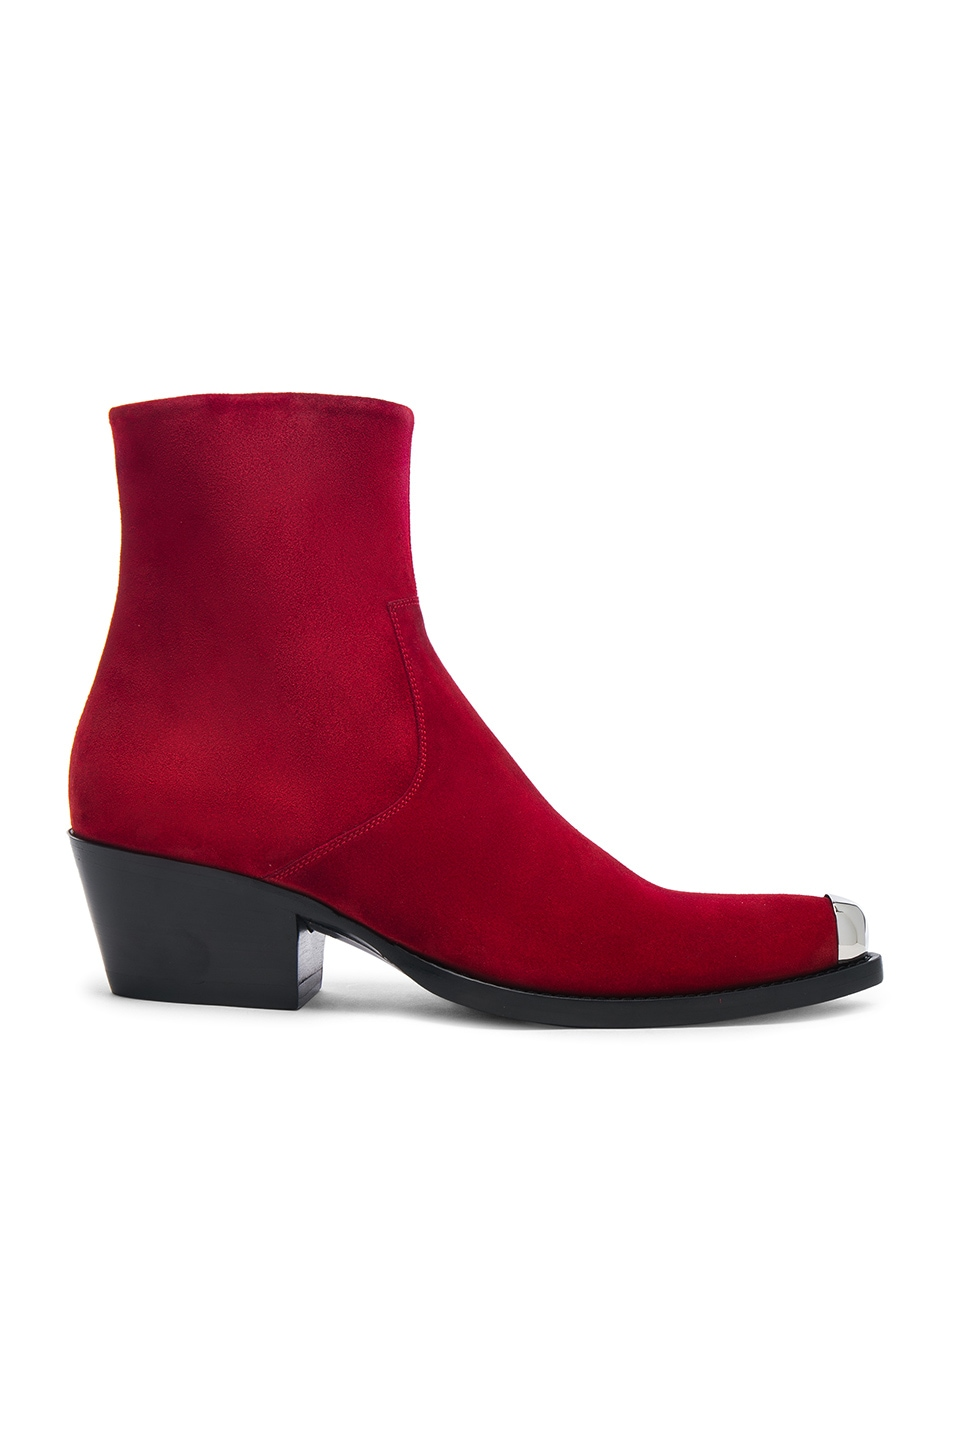 Calvin Klein Suede Tex Chiara Ankle Boots in . gsJrp